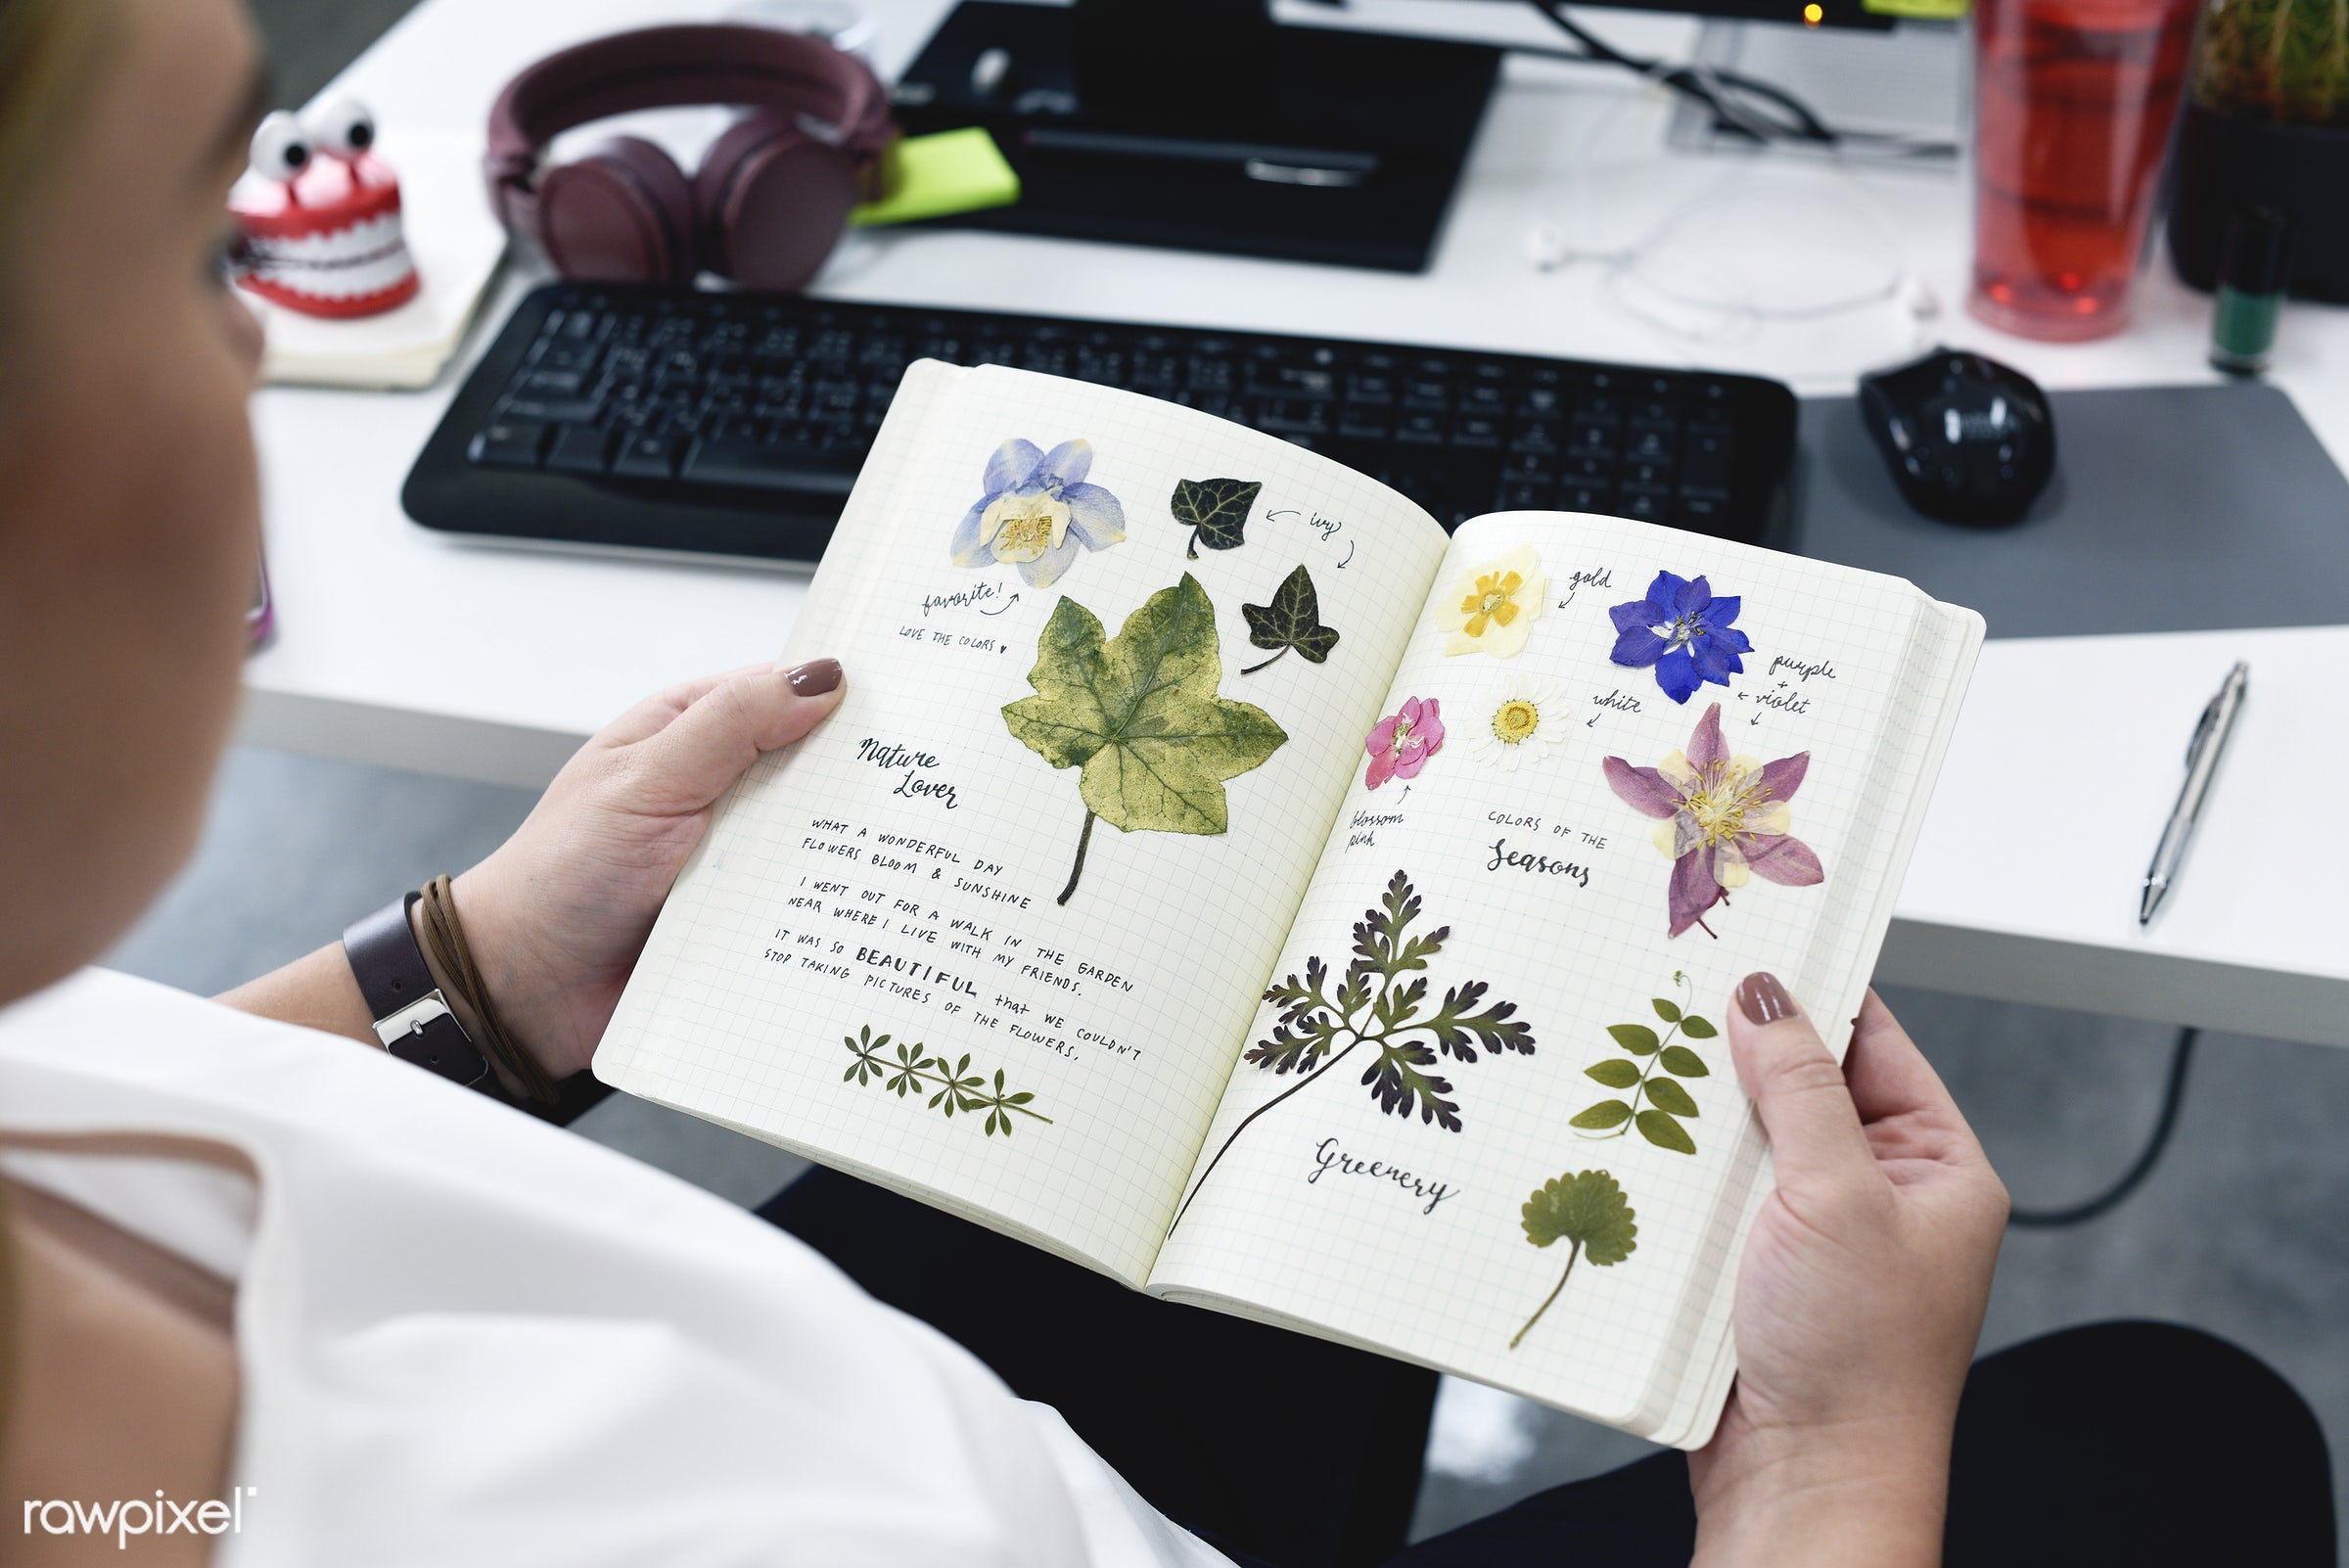 book, collection, computer, desk, diary, dried, entry, floral, flowers, handicraft, handmade, hands, hobby, holding, journal...